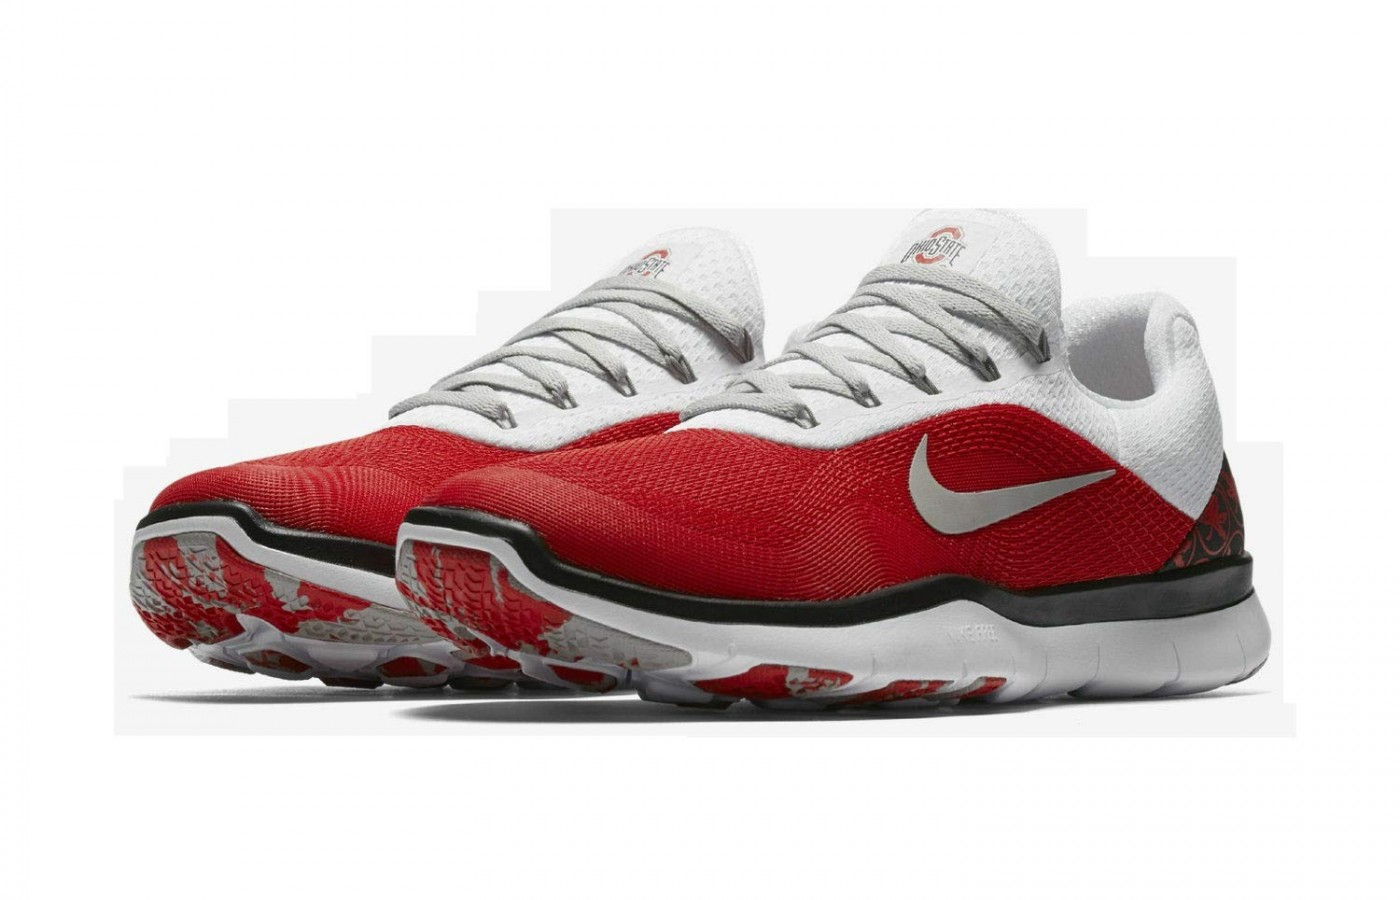 Nike Free Trainer V7 Week 0 Ohio State Buckeyes pair